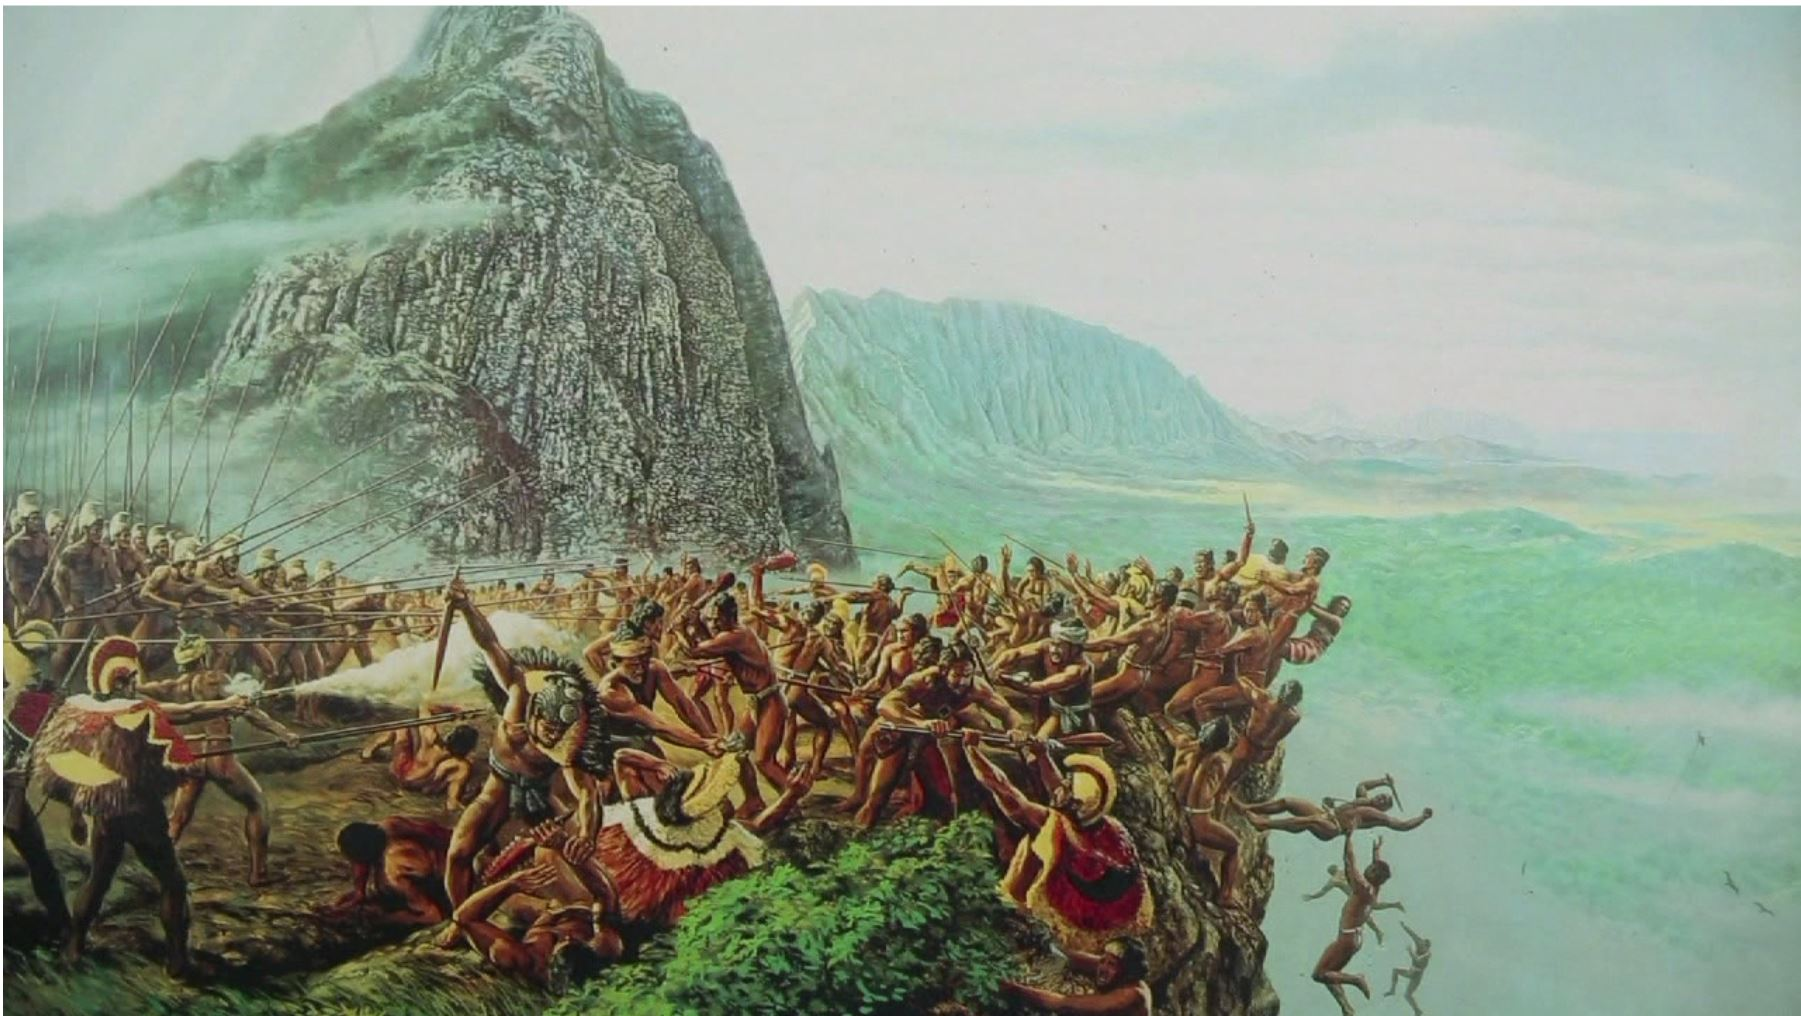 Painting depicting the battle of Nuuanu as it comes to it's conclusion along the Pali Lookout on the island of Oahu where Kamehameha's army overpowers the army of King Kalanikupele and literally pushes them over the edge to their deaths.